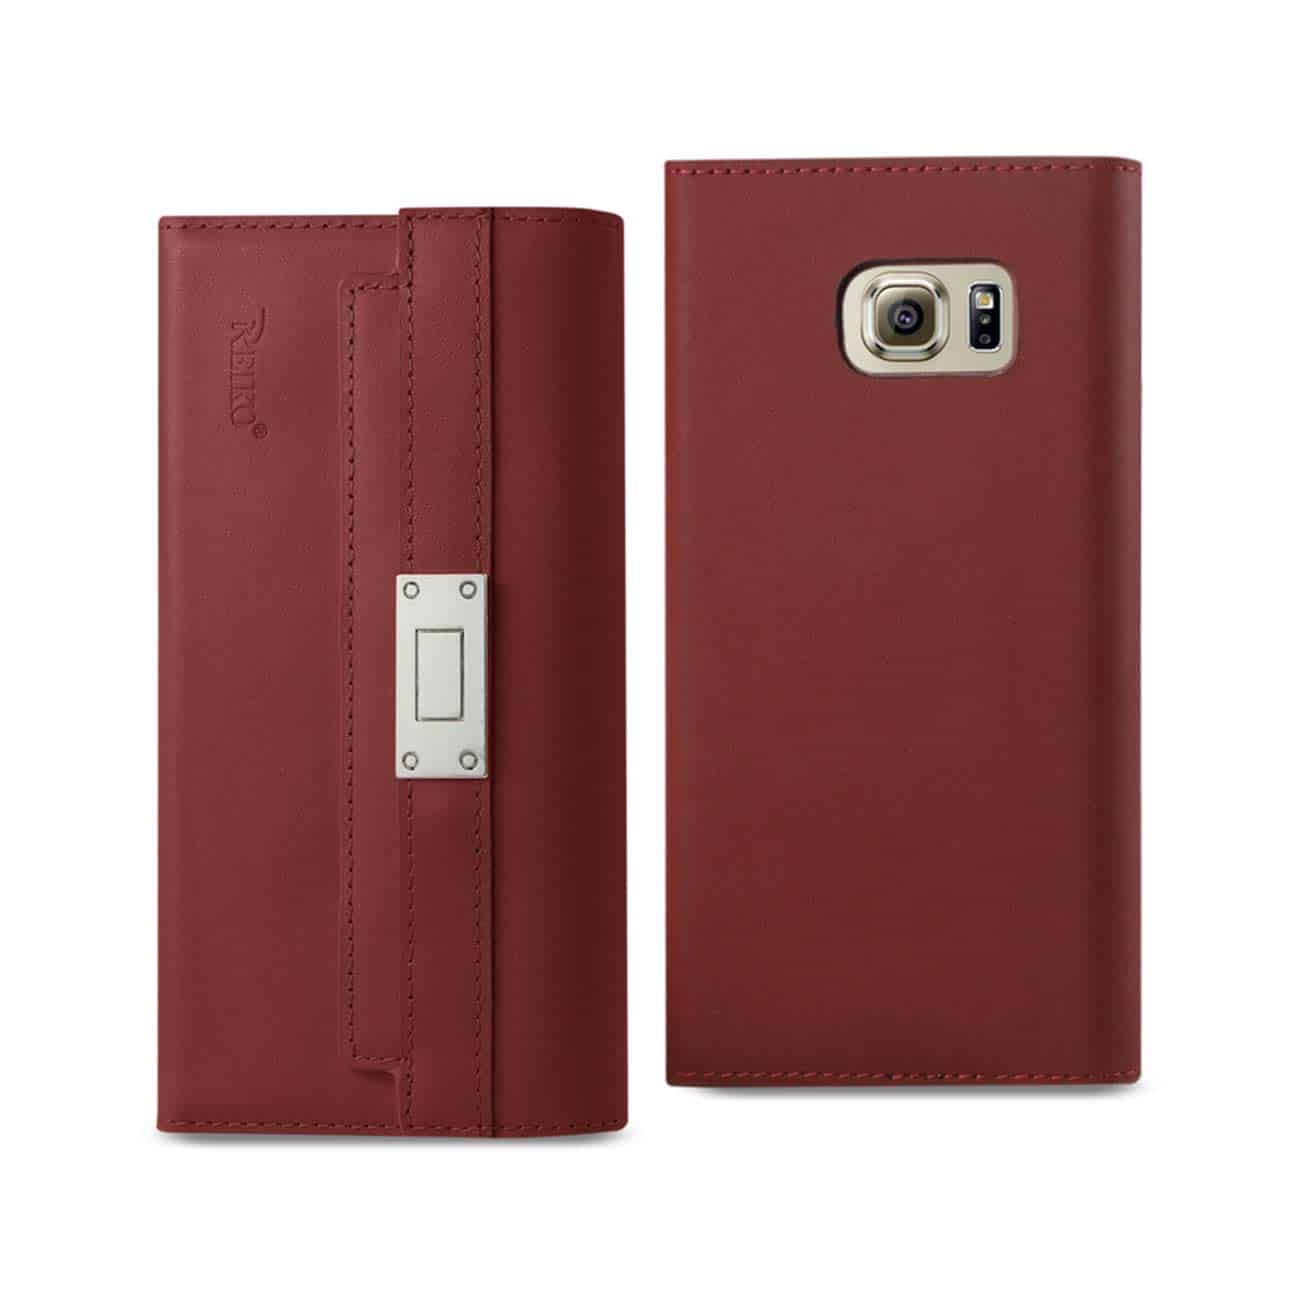 SAMSUNG GALAXY S6 GENUINE LEATHER RFID WALLET CASE AND METAL BUCKLE BELT IN BURGUNDY